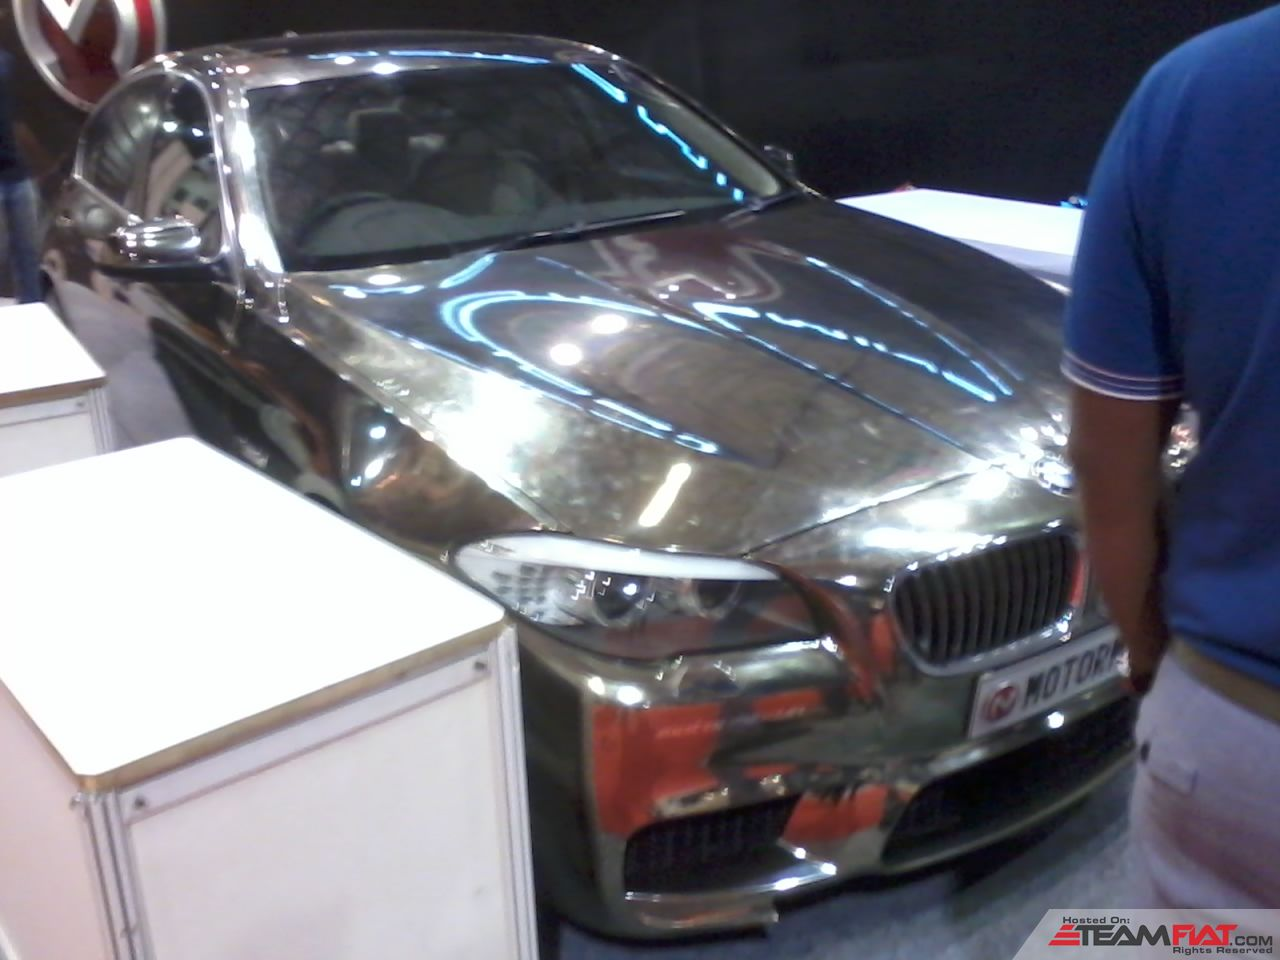 42034d1362156418-autoshow-2013-whitefield-bangalore-2013-03-01-18.30.36.jpg